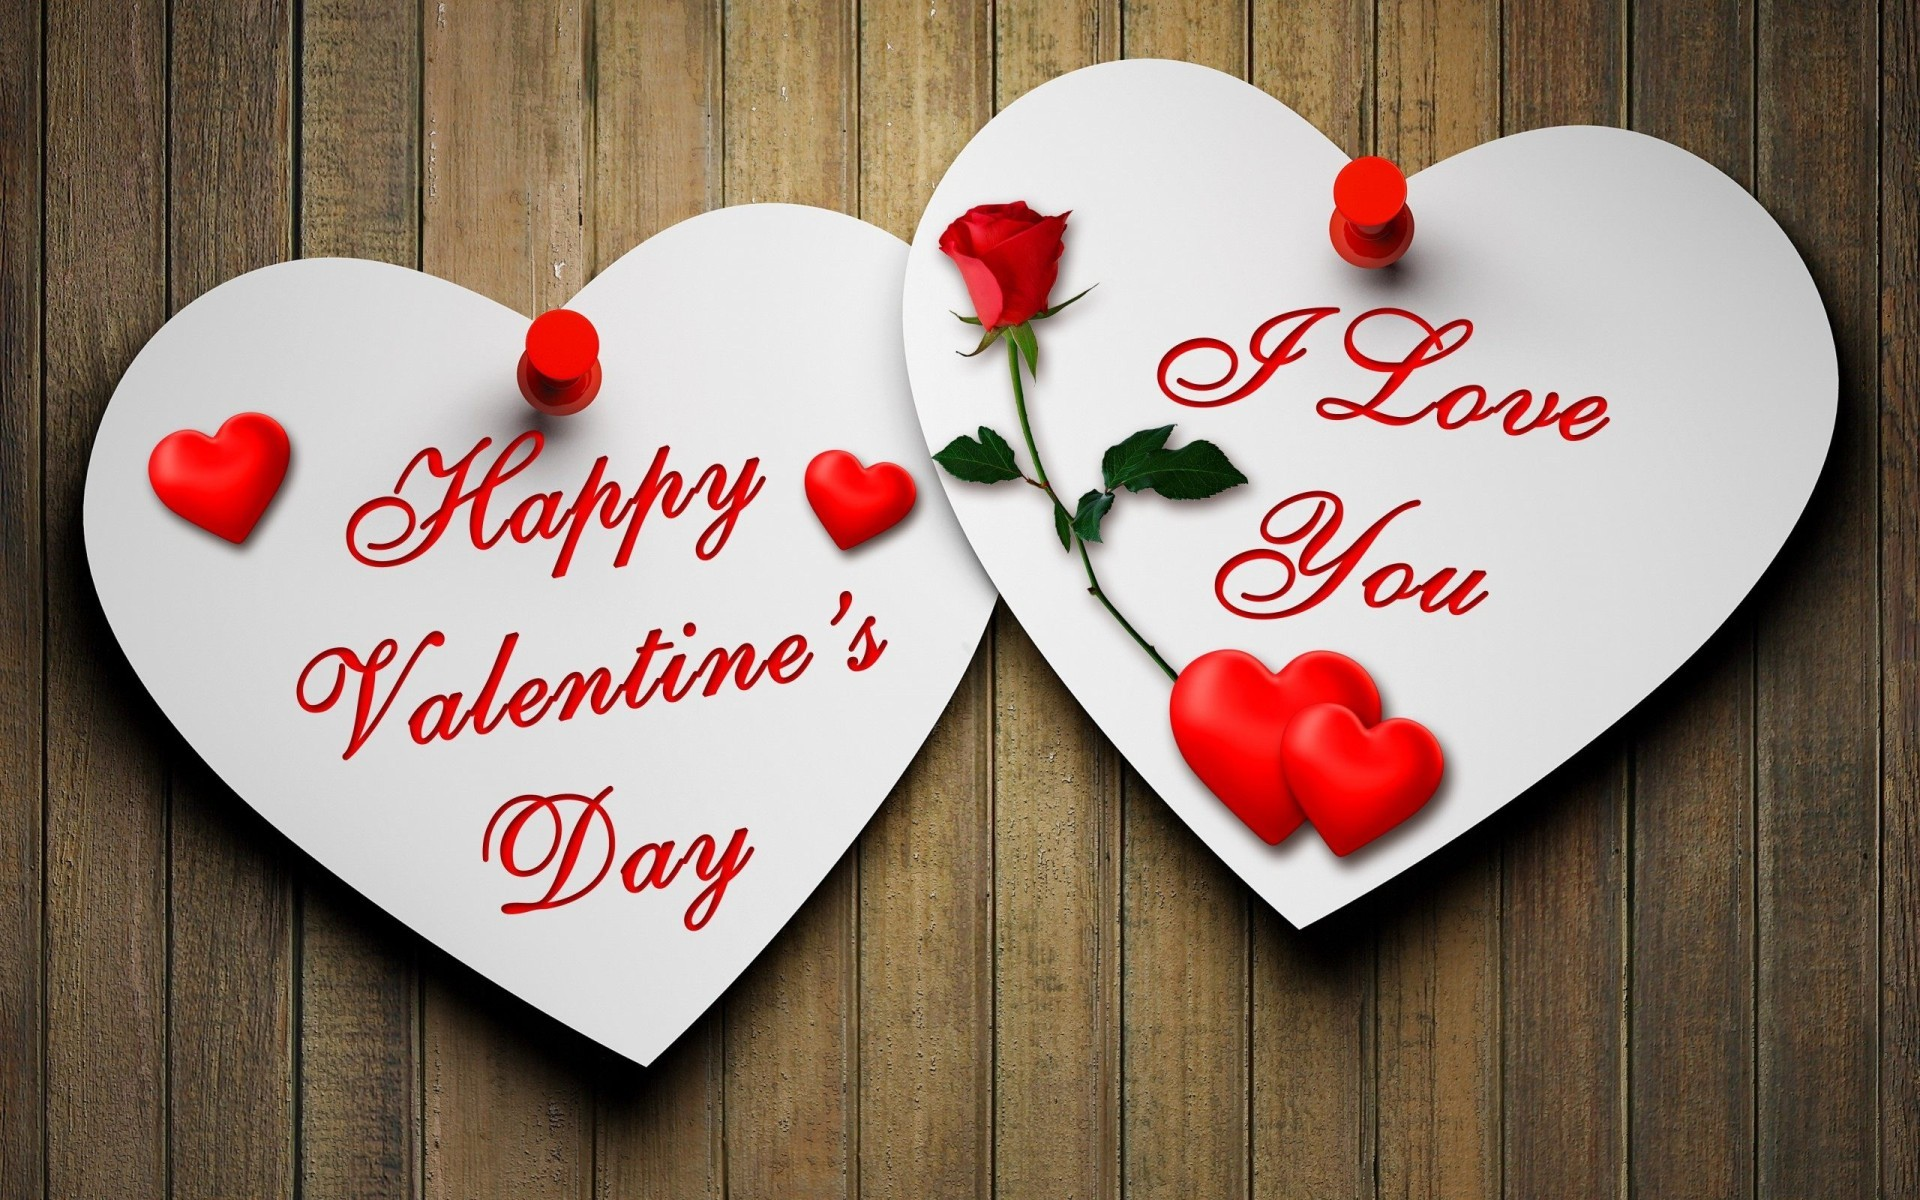 1920x1200 Happy Valentine Day I Love You Wallpaper happy valentine day i love you  wallpaper happy valentine day i love you wallpaper desktop, happy valentine  day i ...